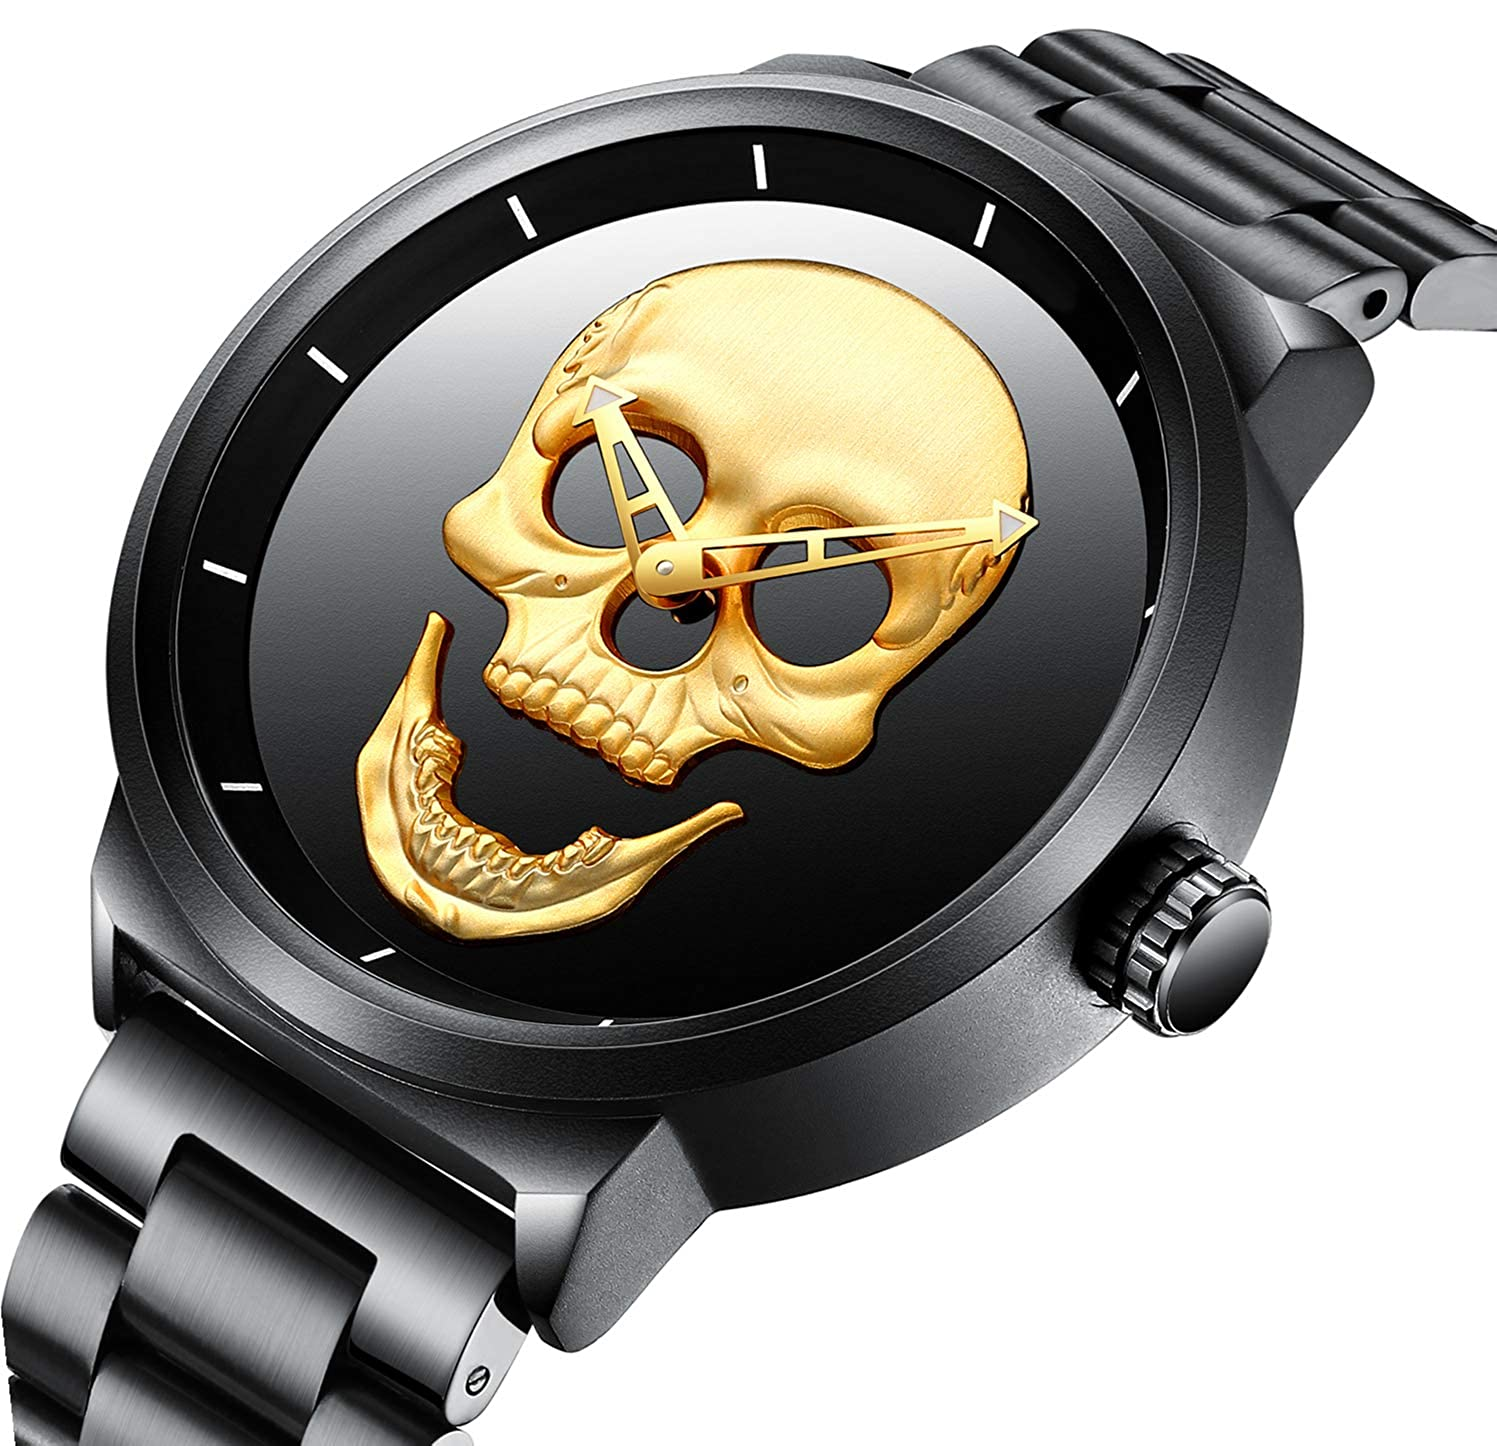 84f6eca90782c Watch,Mens Watch,Luxury Classic Skeleton Mechanical Large Face Gold Skull  Stainless Steel Watch with Link Bracelet,Dress Waterproof Watch for Men